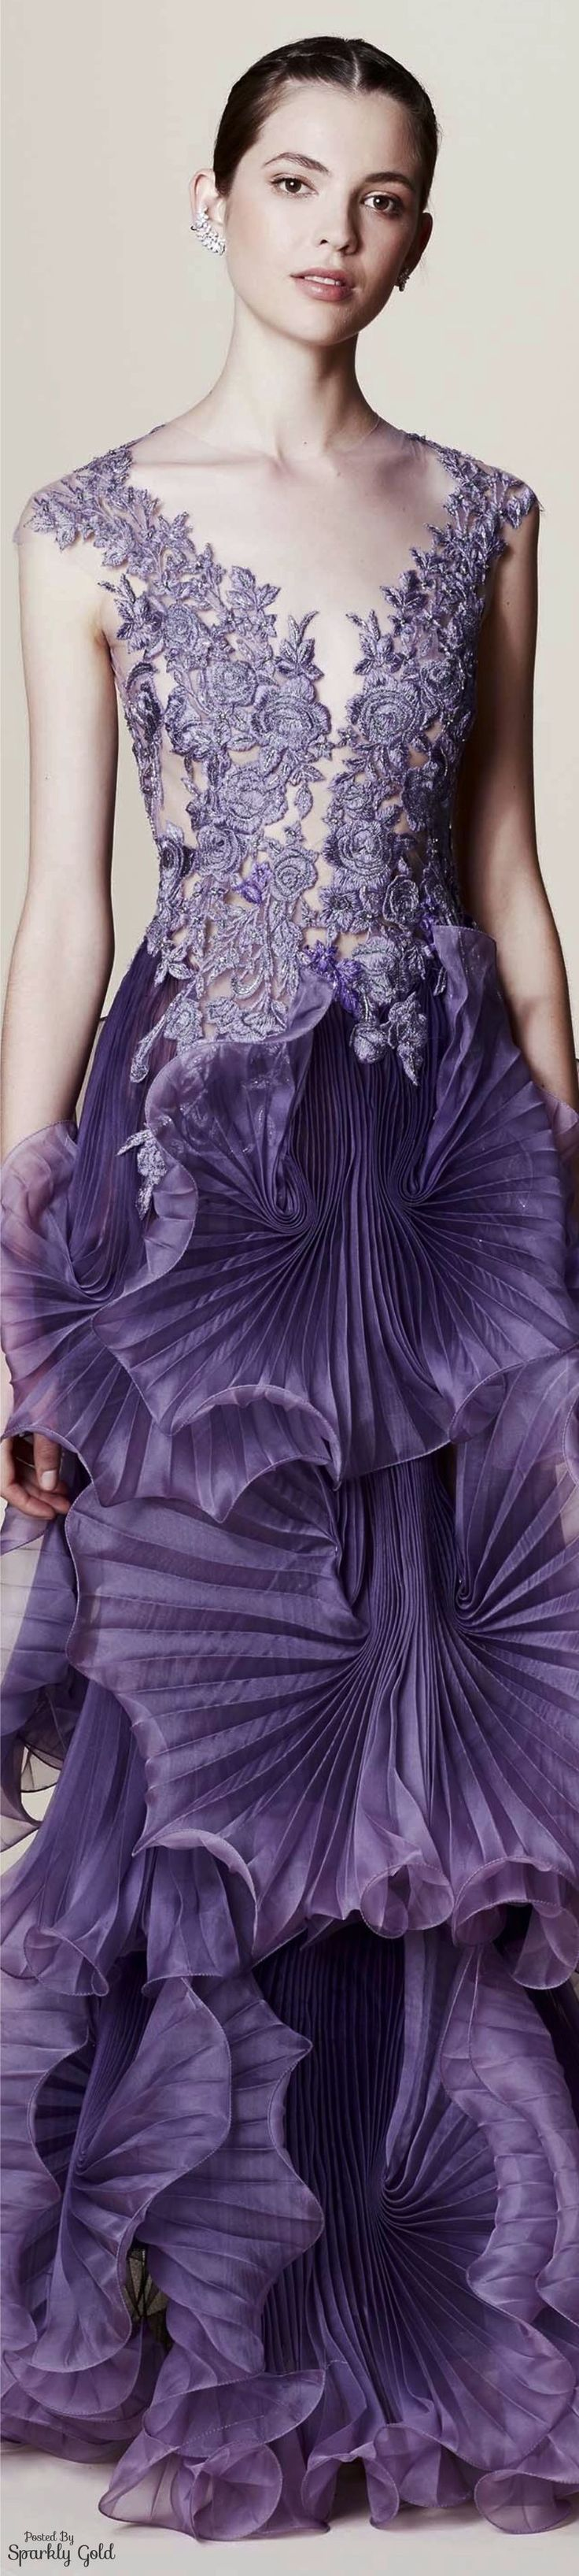 Marchesa Resort 2017 Lavender, purple, lace dress, wedding dresses, prom dress, formal wear, ballroom, ball gown, Romantic, elegant, elegance, flowers